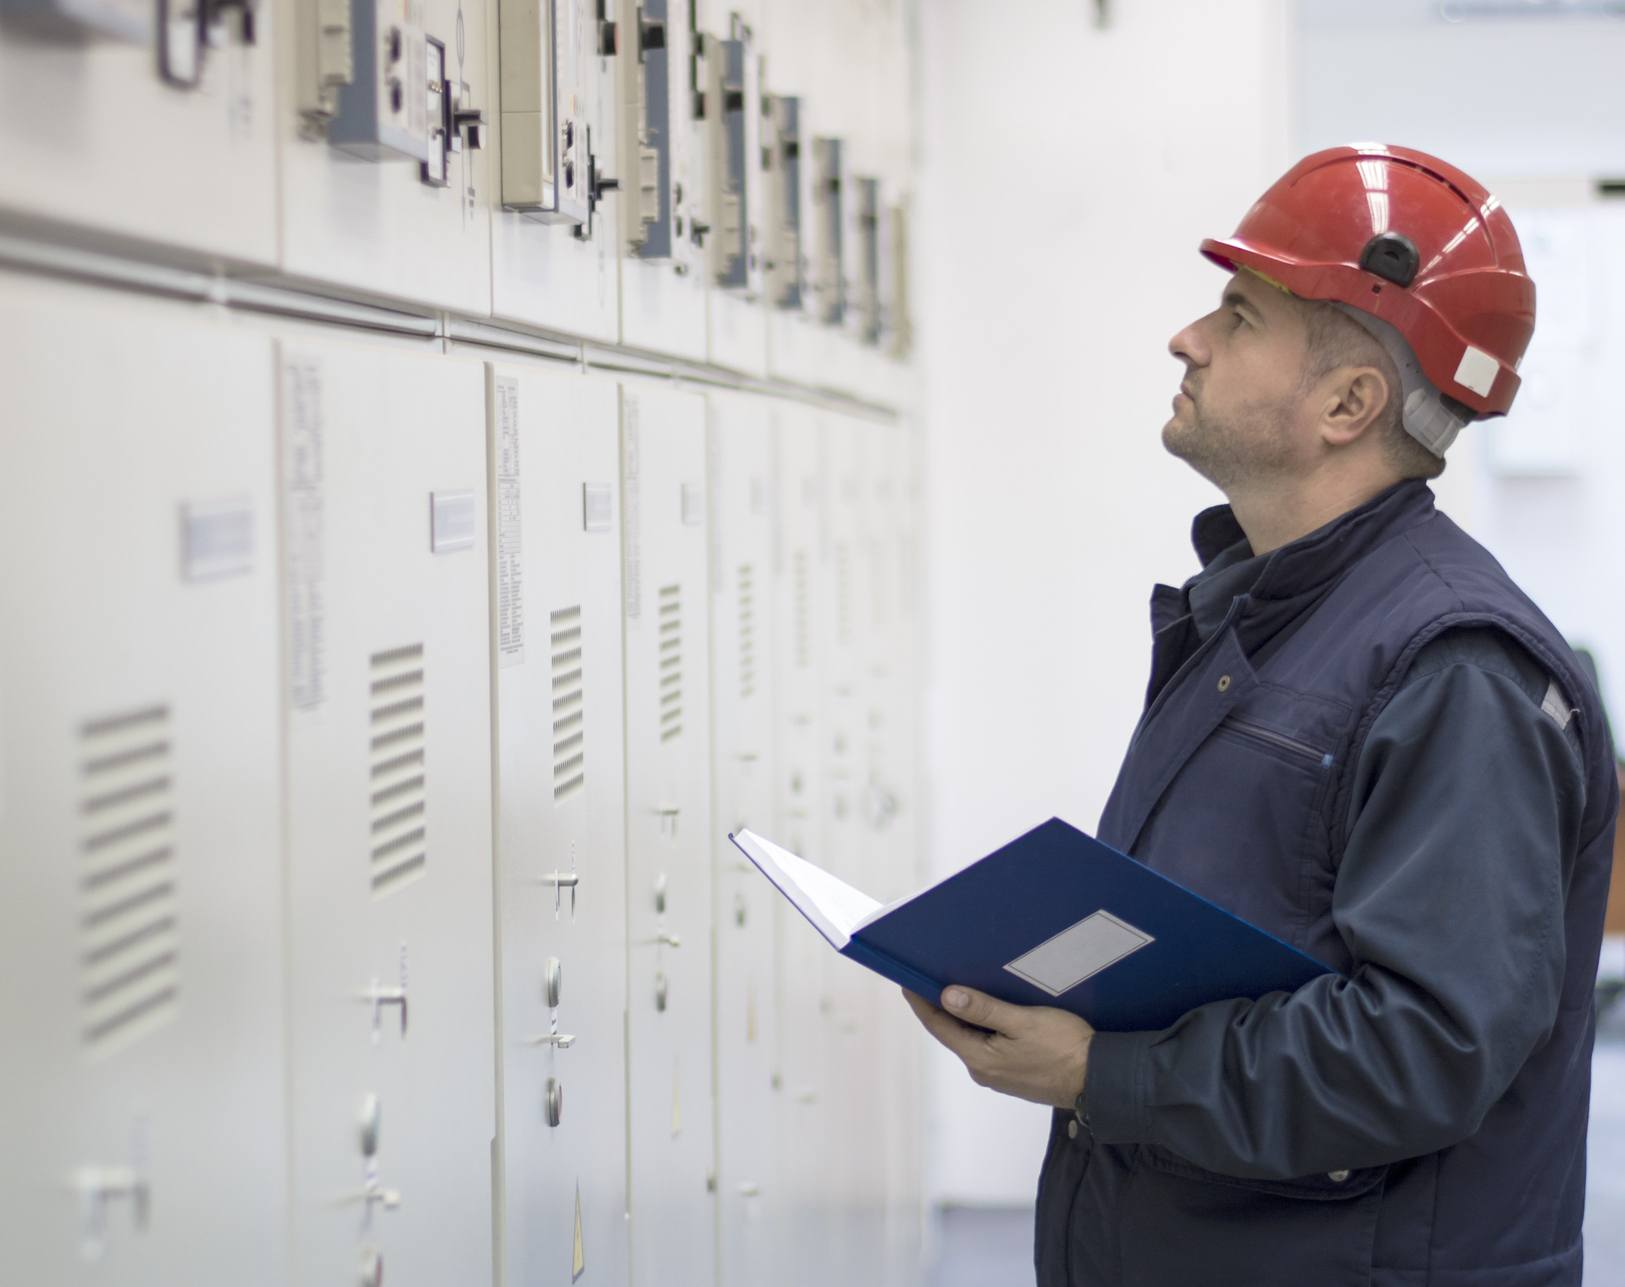 Technician Checks the Functionality of the Equipment in Electrical Room